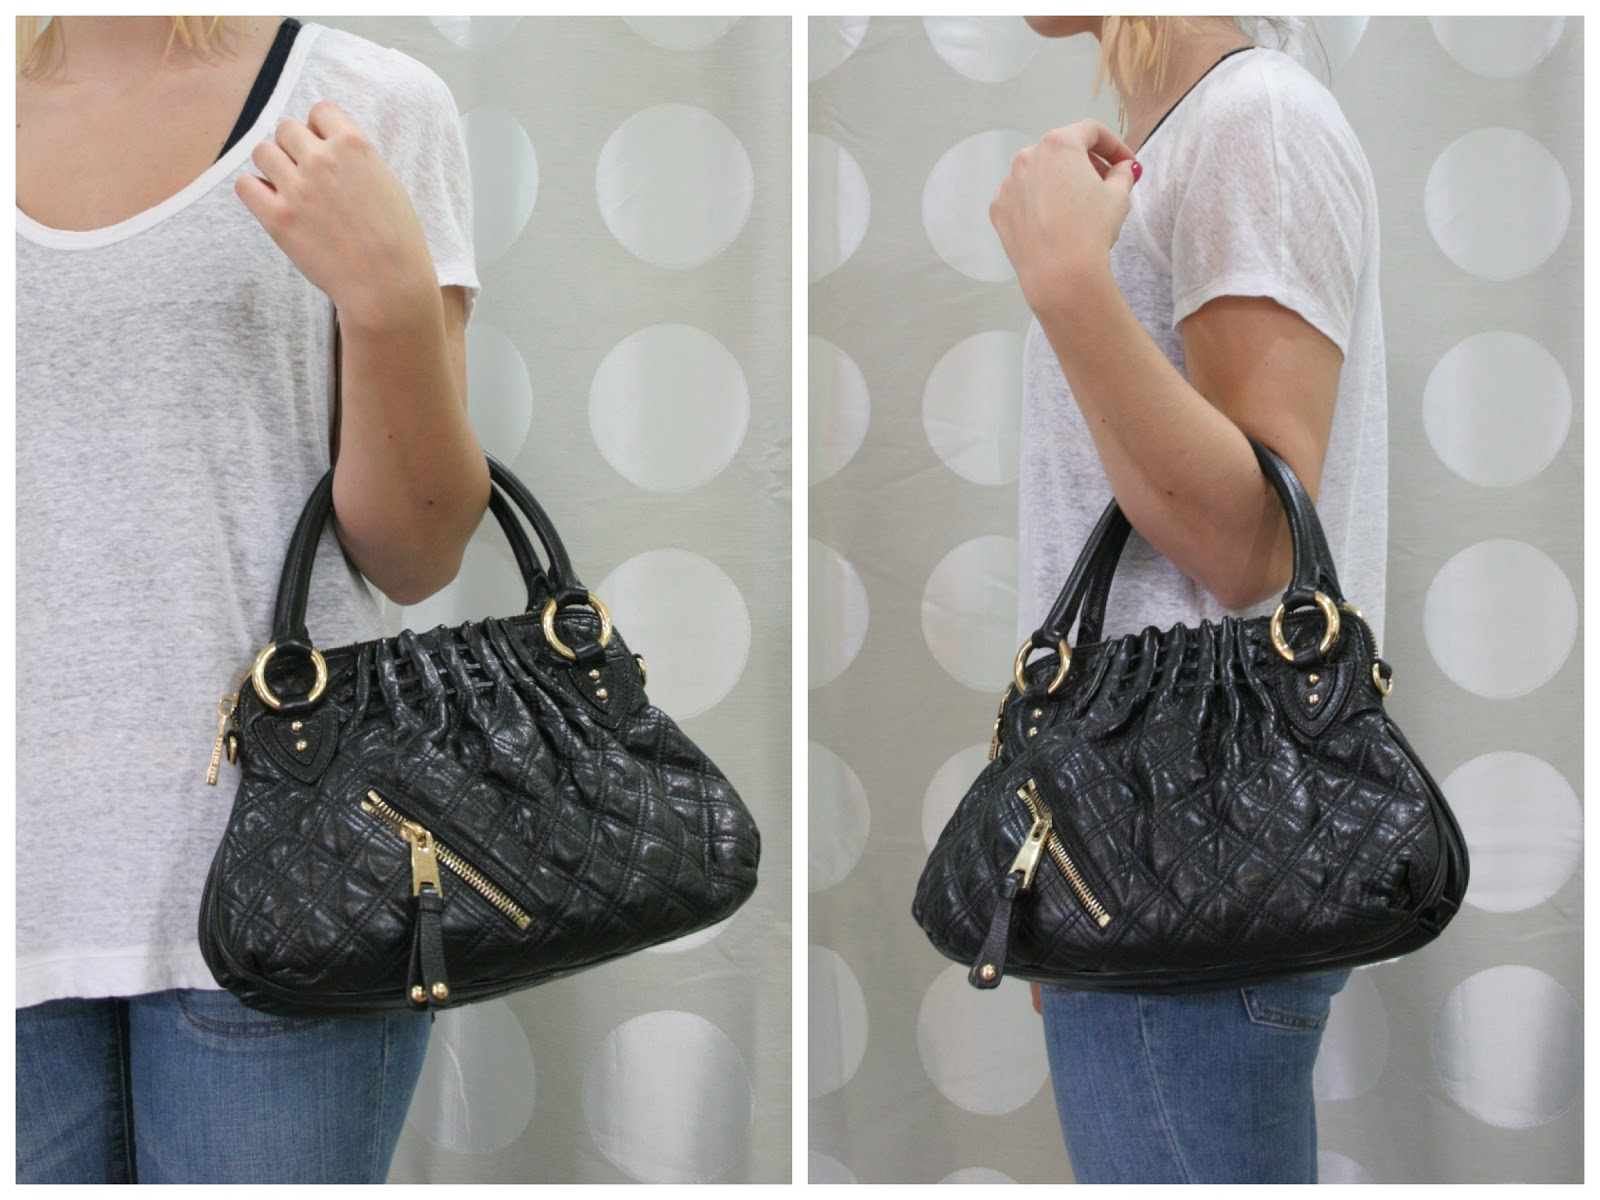 27267c2f36d Bags on Body II: Fab Chanel! | Recycled Chic Consignment